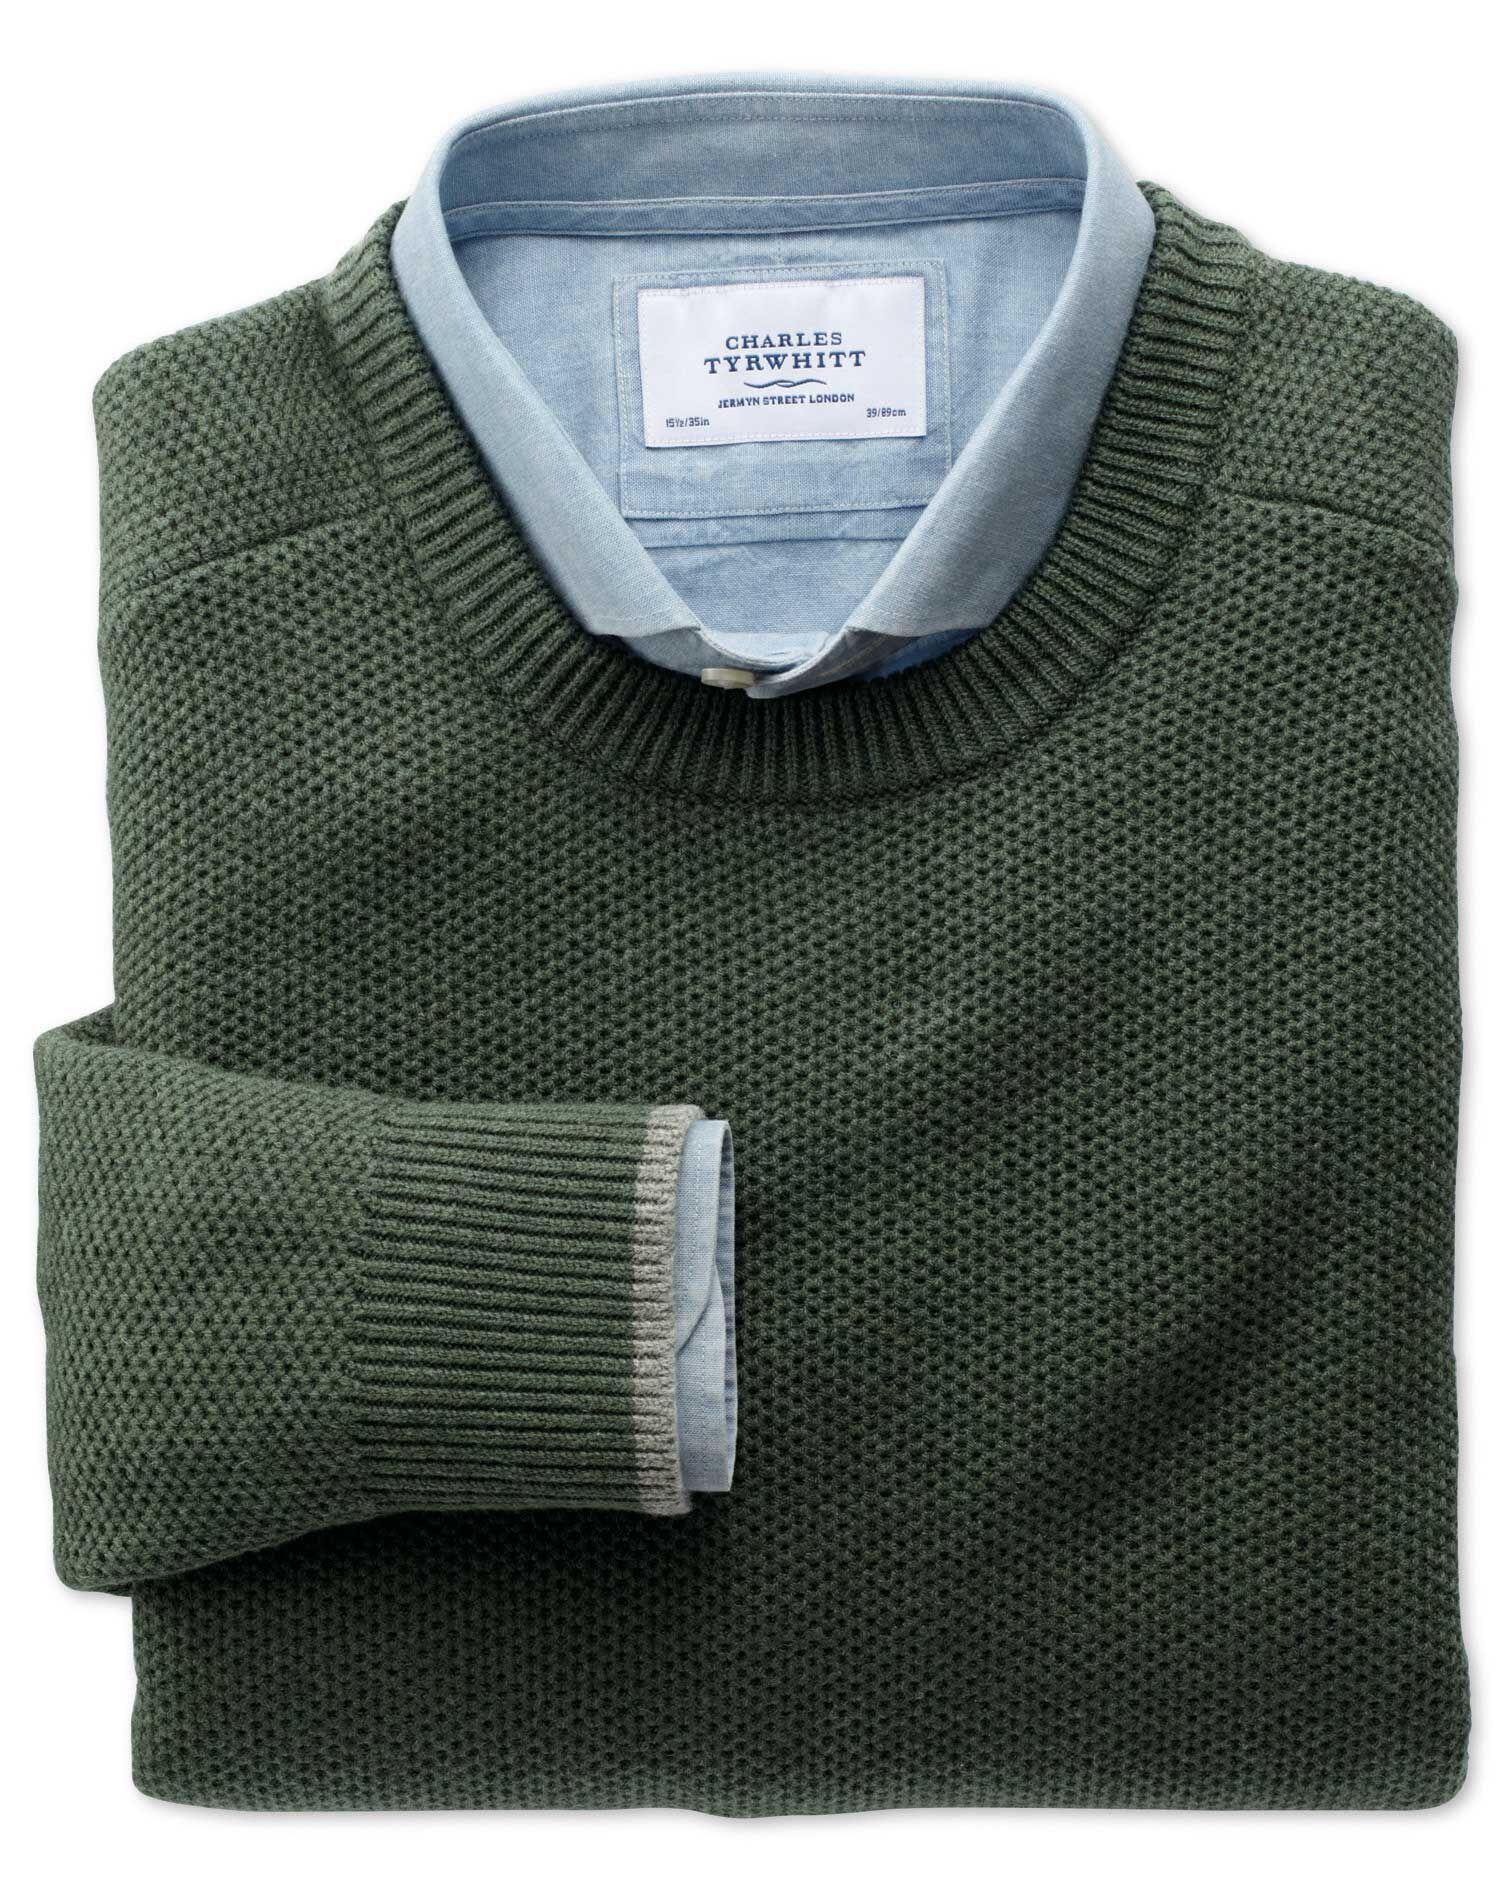 Olive Merino Cotton Crew Neck Wool Jumper Size Large by Charles Tyrwhitt